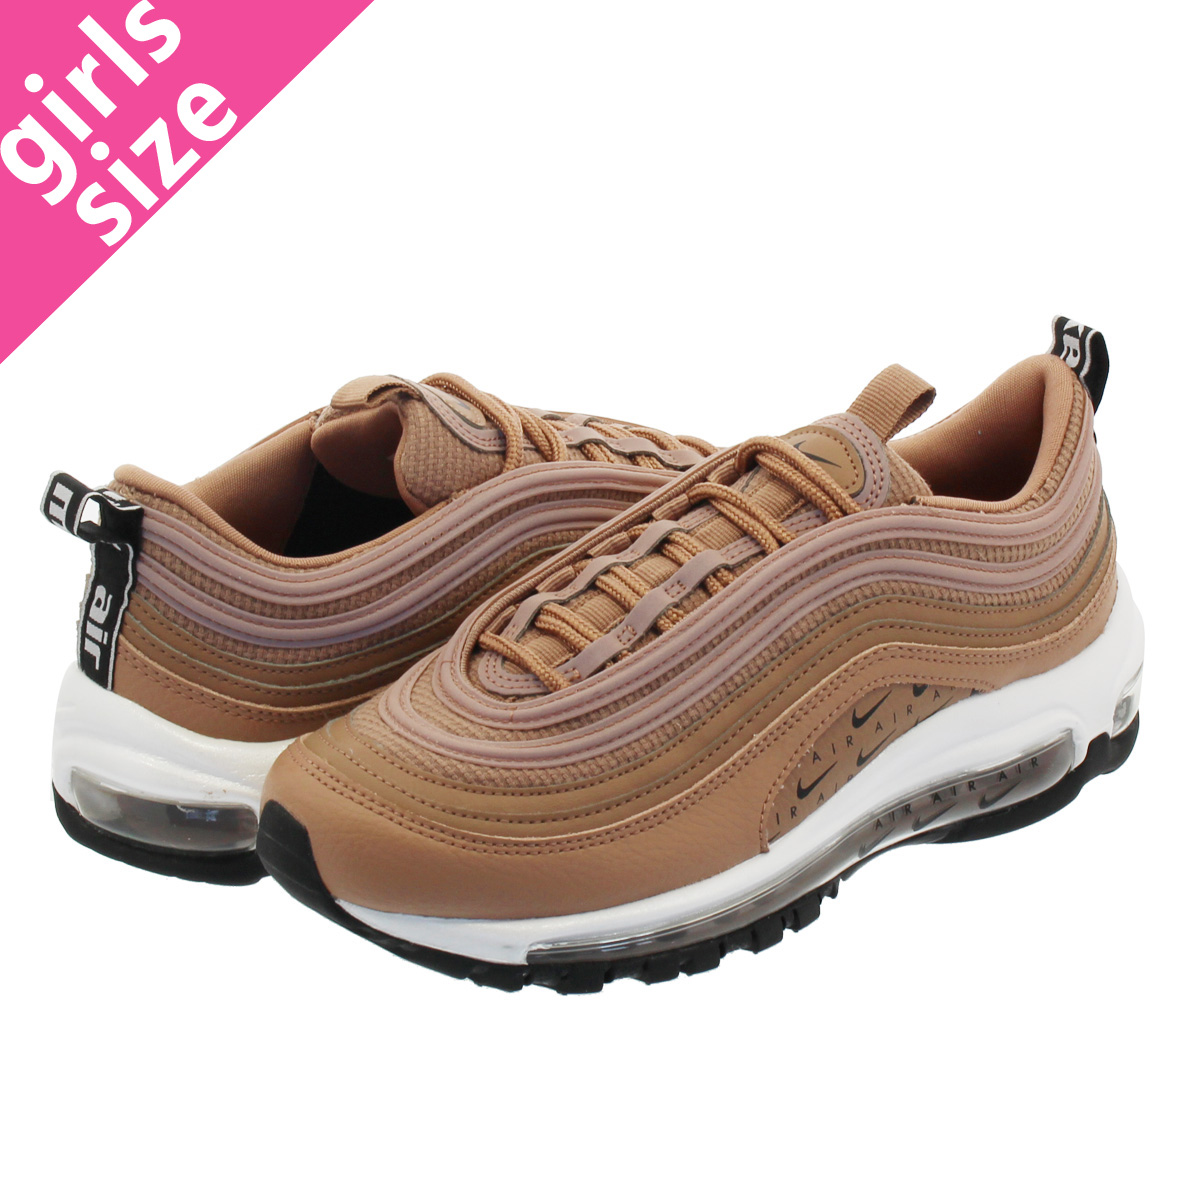 Buy Nike Air Max 97 LX 'Overbranded' AR7621 200 Online | at